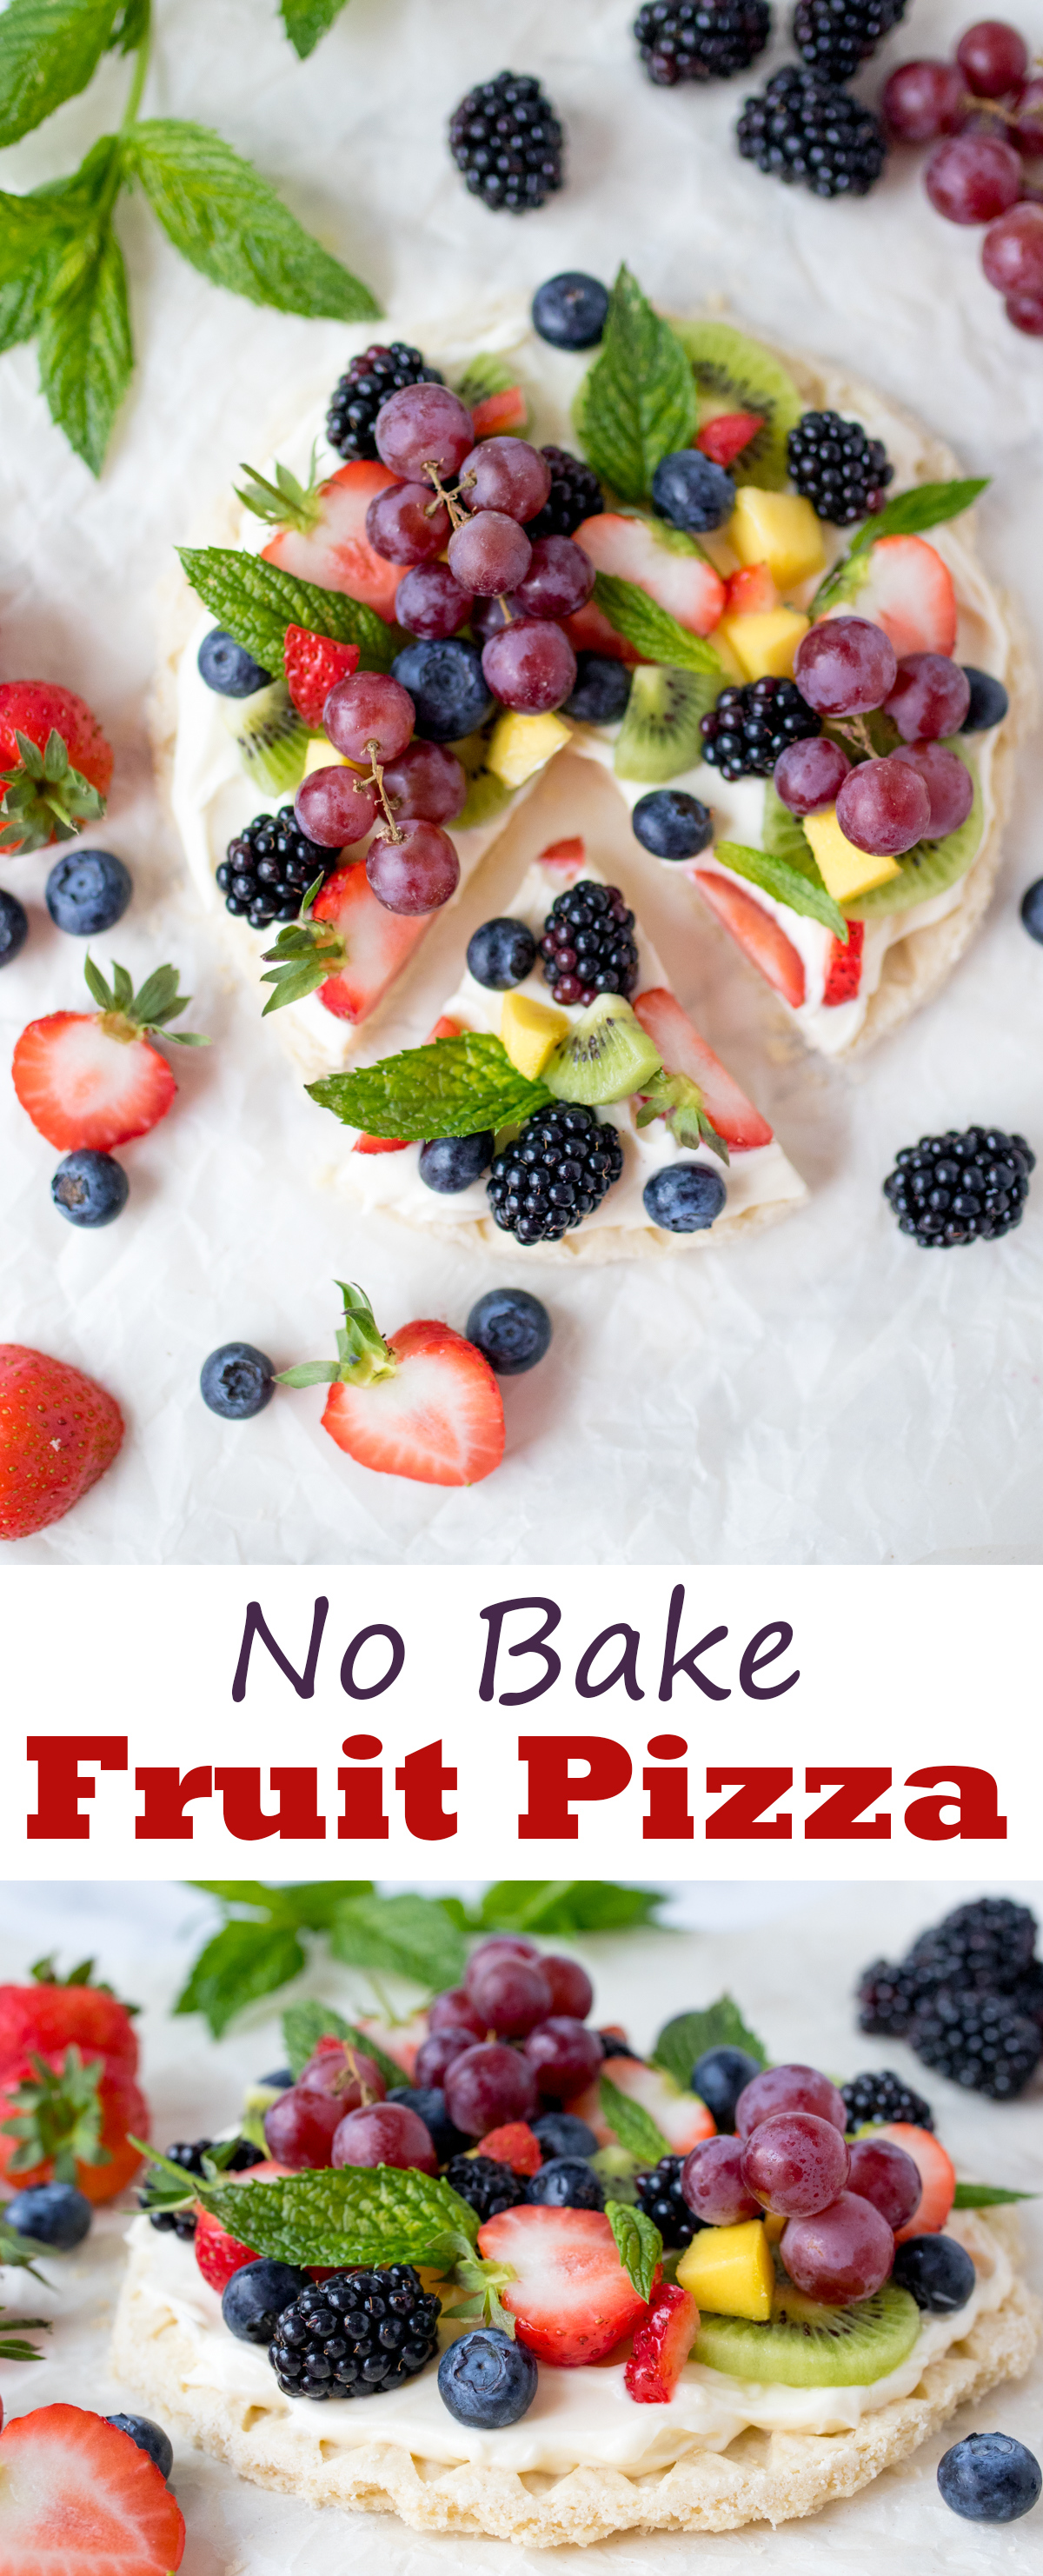 No-Bake Fruit Pizza - A simple and attractive summer dessert!